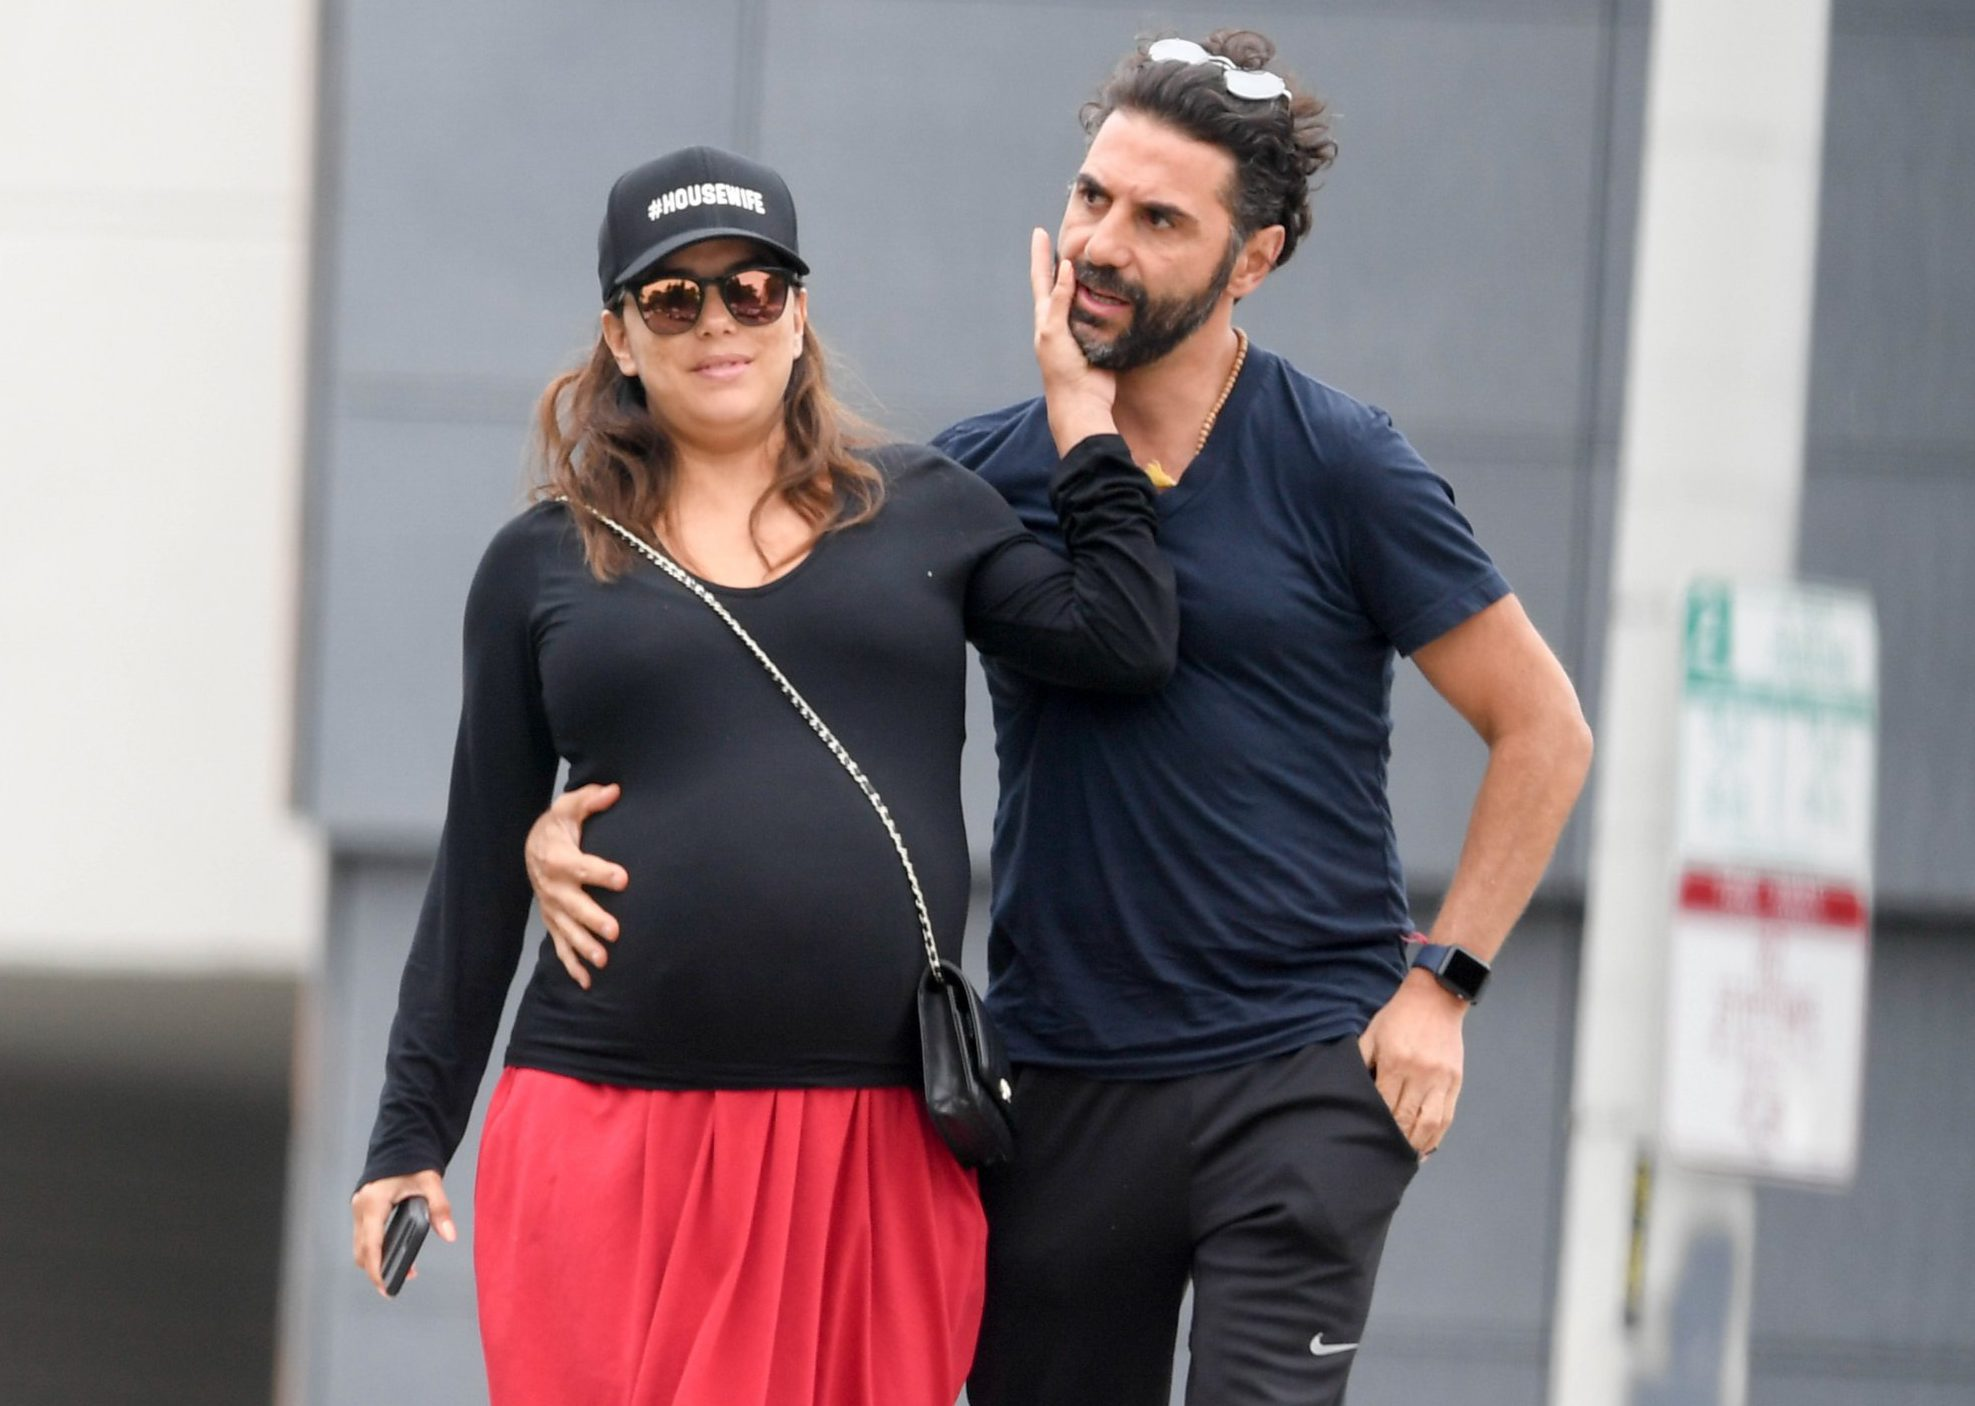 Eva Longoria and husband Jose Baston show affection as they leave a late lunch at Tocaya. 29 May 2018 Pictured: Eva Longoria and Jose Baston. Photo credit: MEGA TheMegaAgency.com +1 888 505 6342